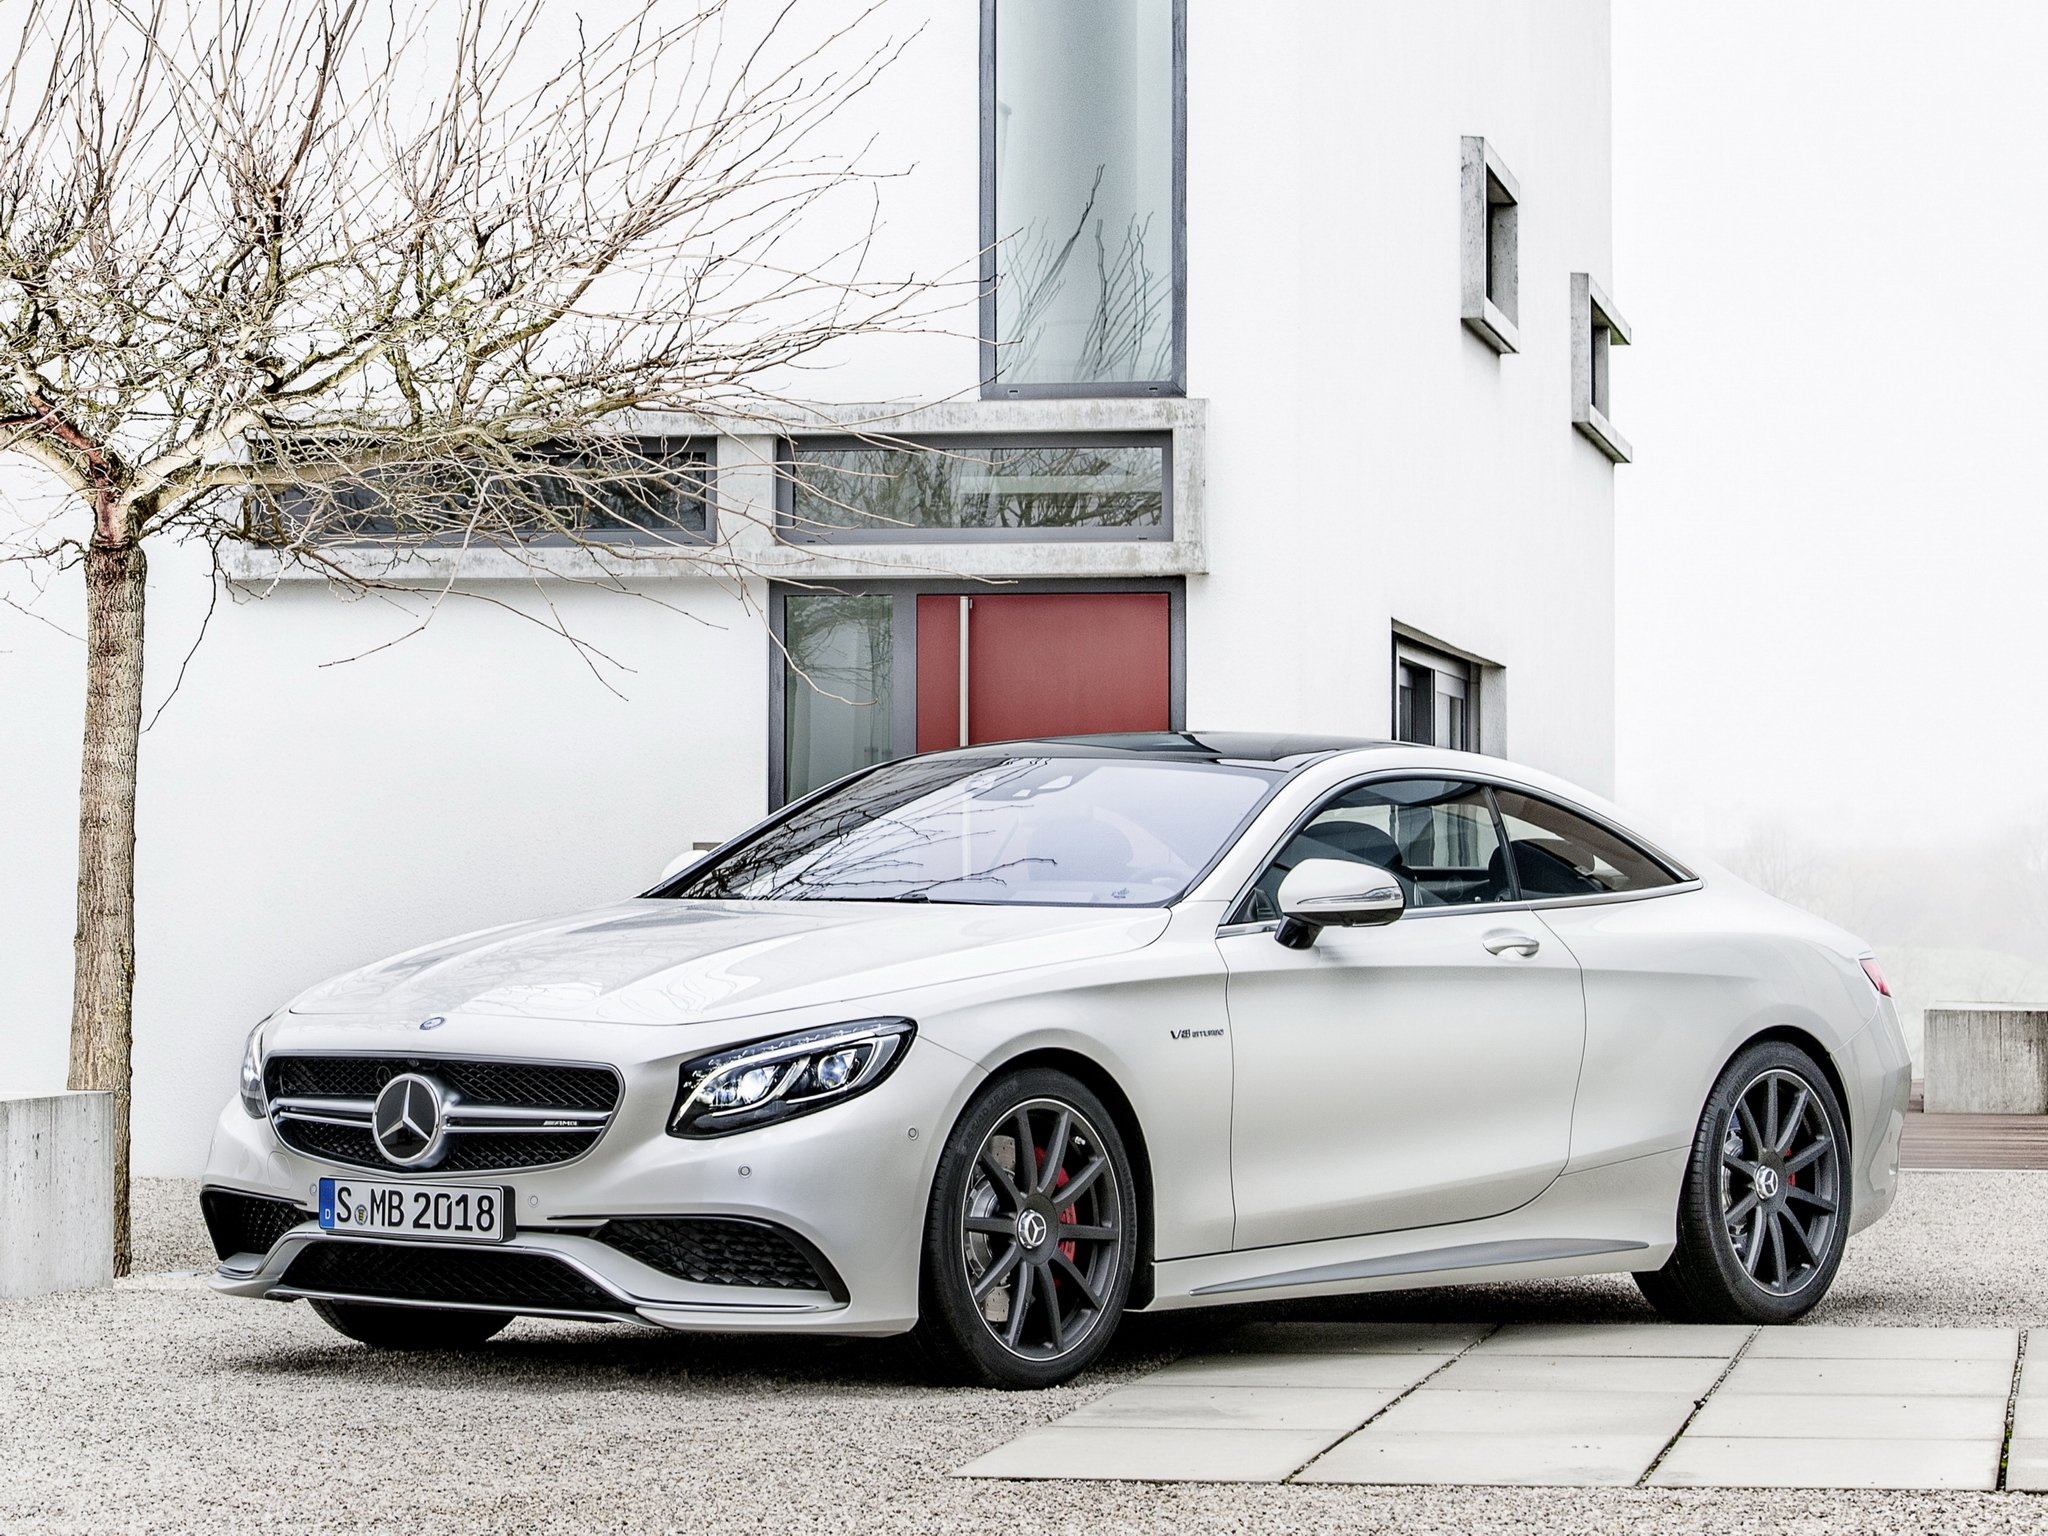 S 63 Amg Wallpaper: 2014 Mercedes Benz S63 AMG Coupe (C217) H Wallpaper